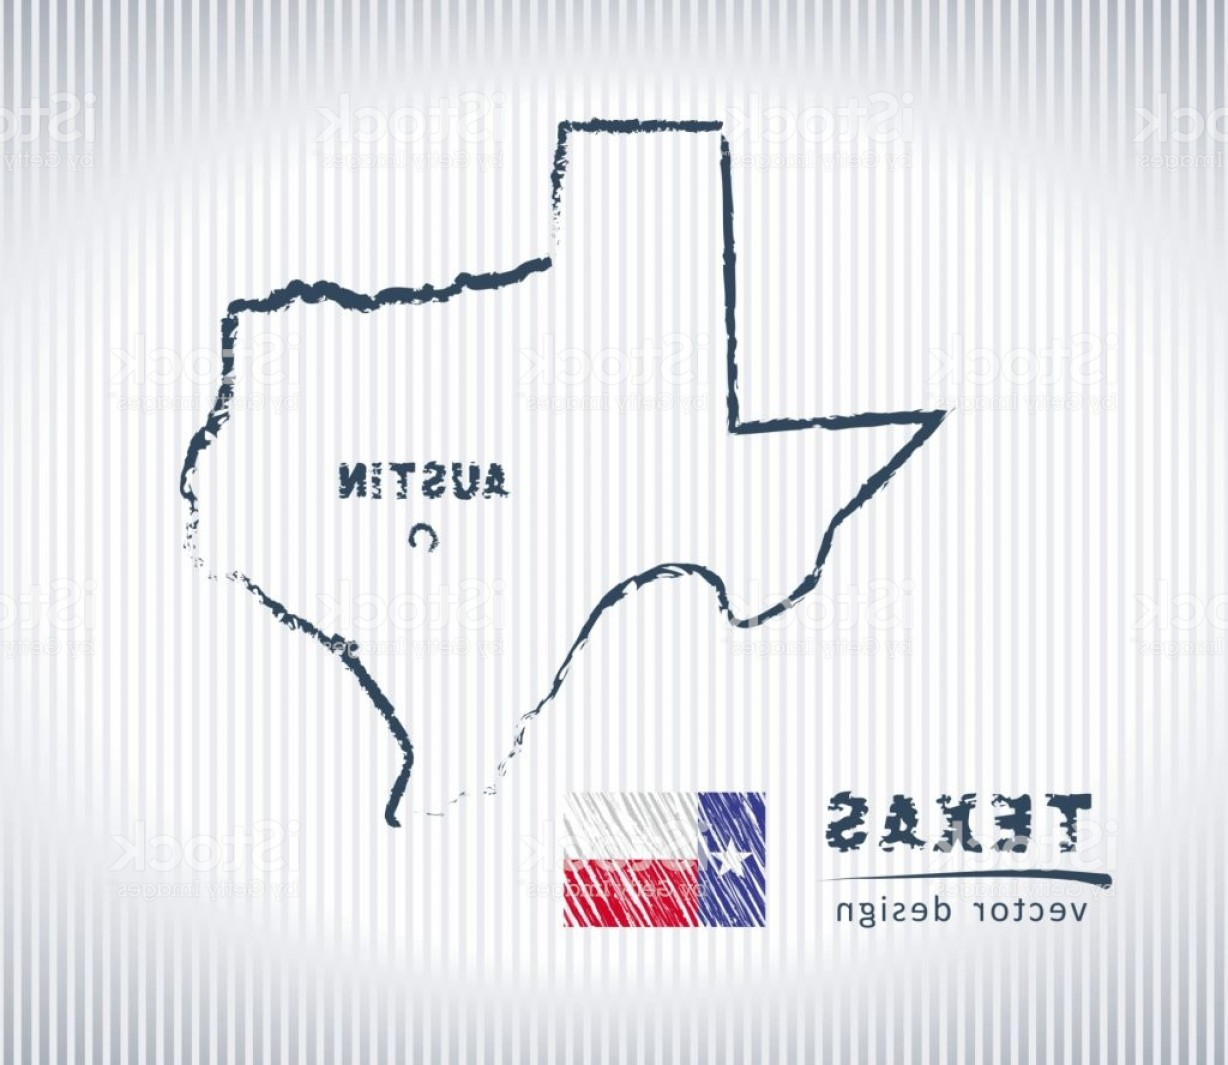 Texas Vector Drawing: Texas National Vector Drawing Map On White Background Gm